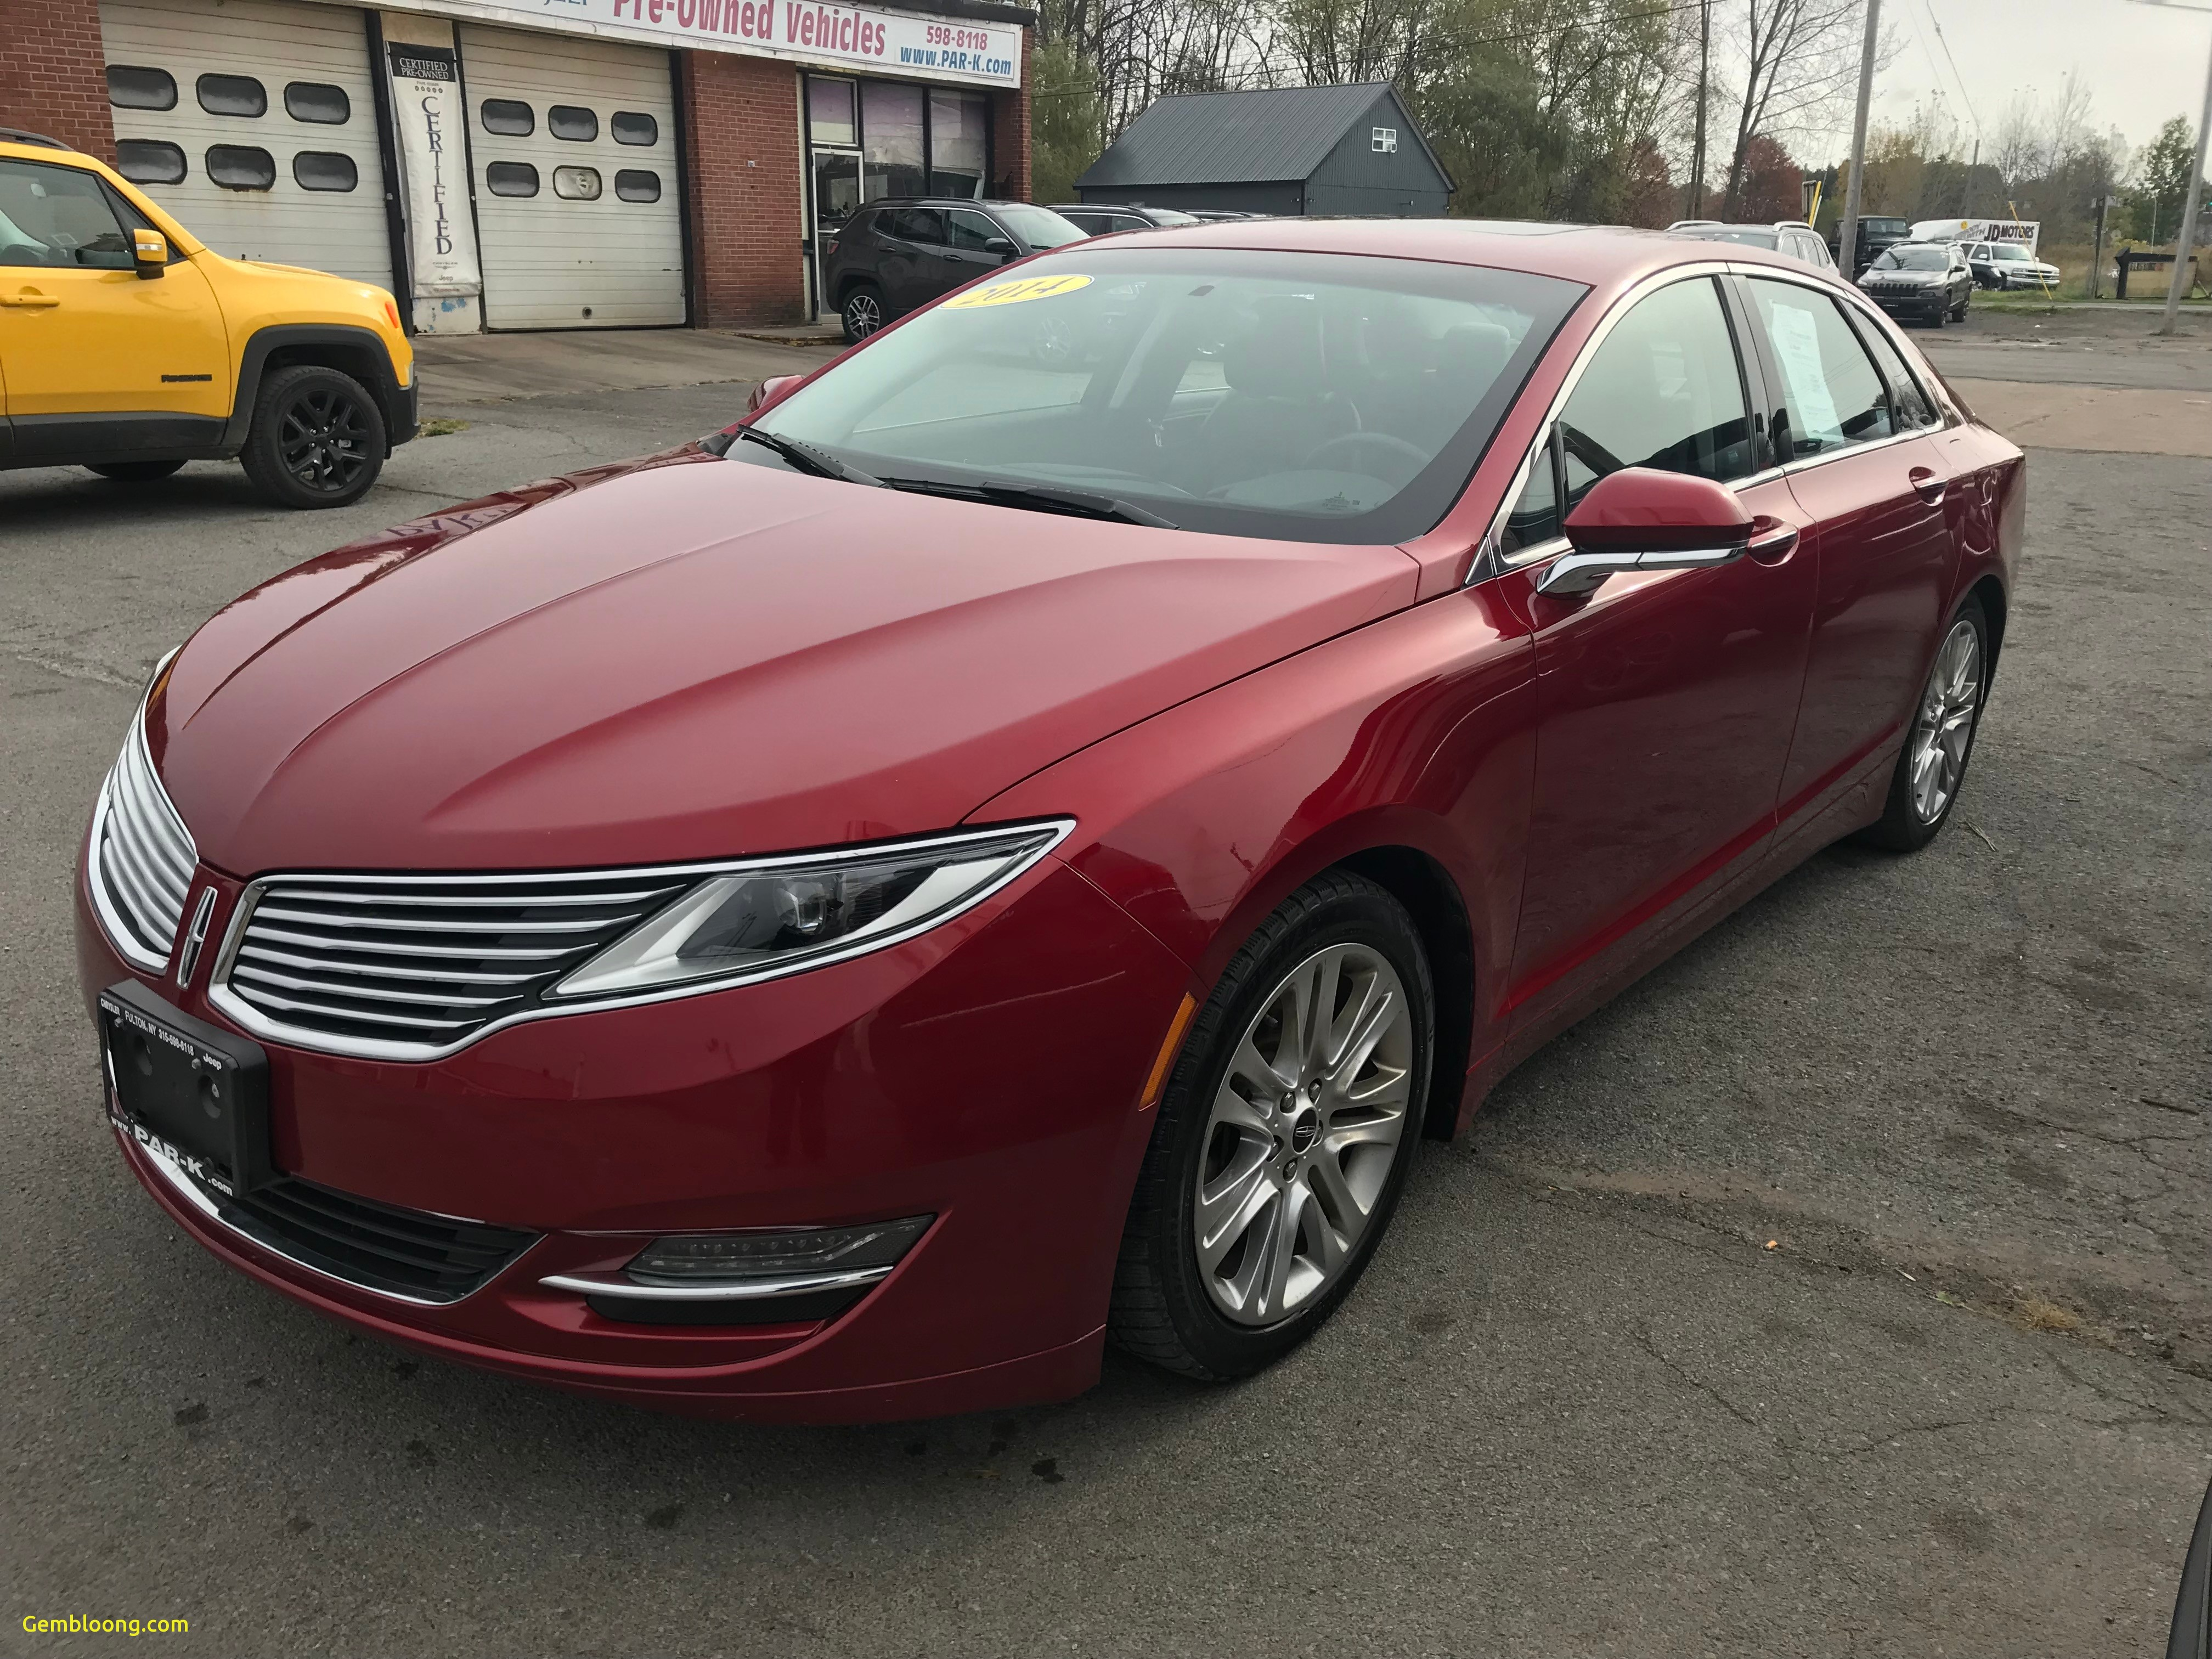 2014 lincoln mkz sedan featured used cars for sale in fulton from pre owned cars for sale near me